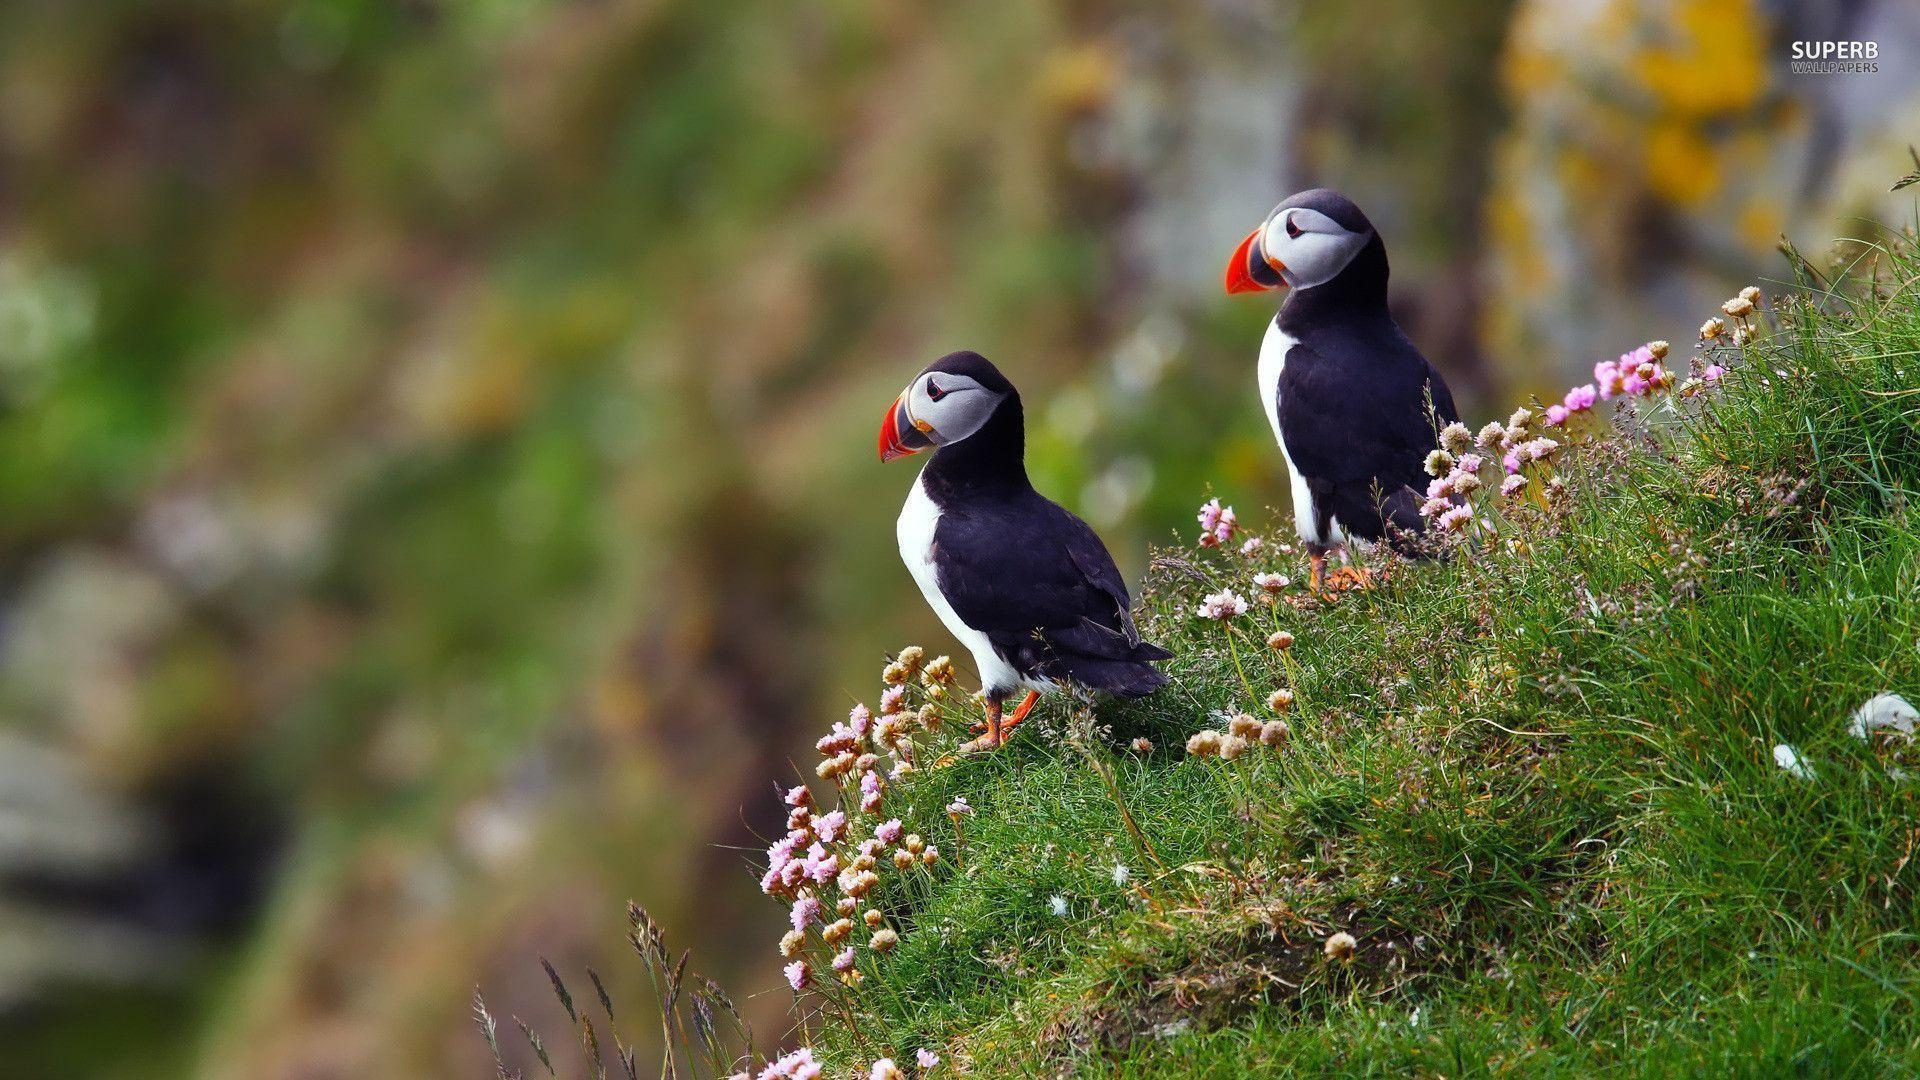 Puffin Wallpapers Wallpaper Cave